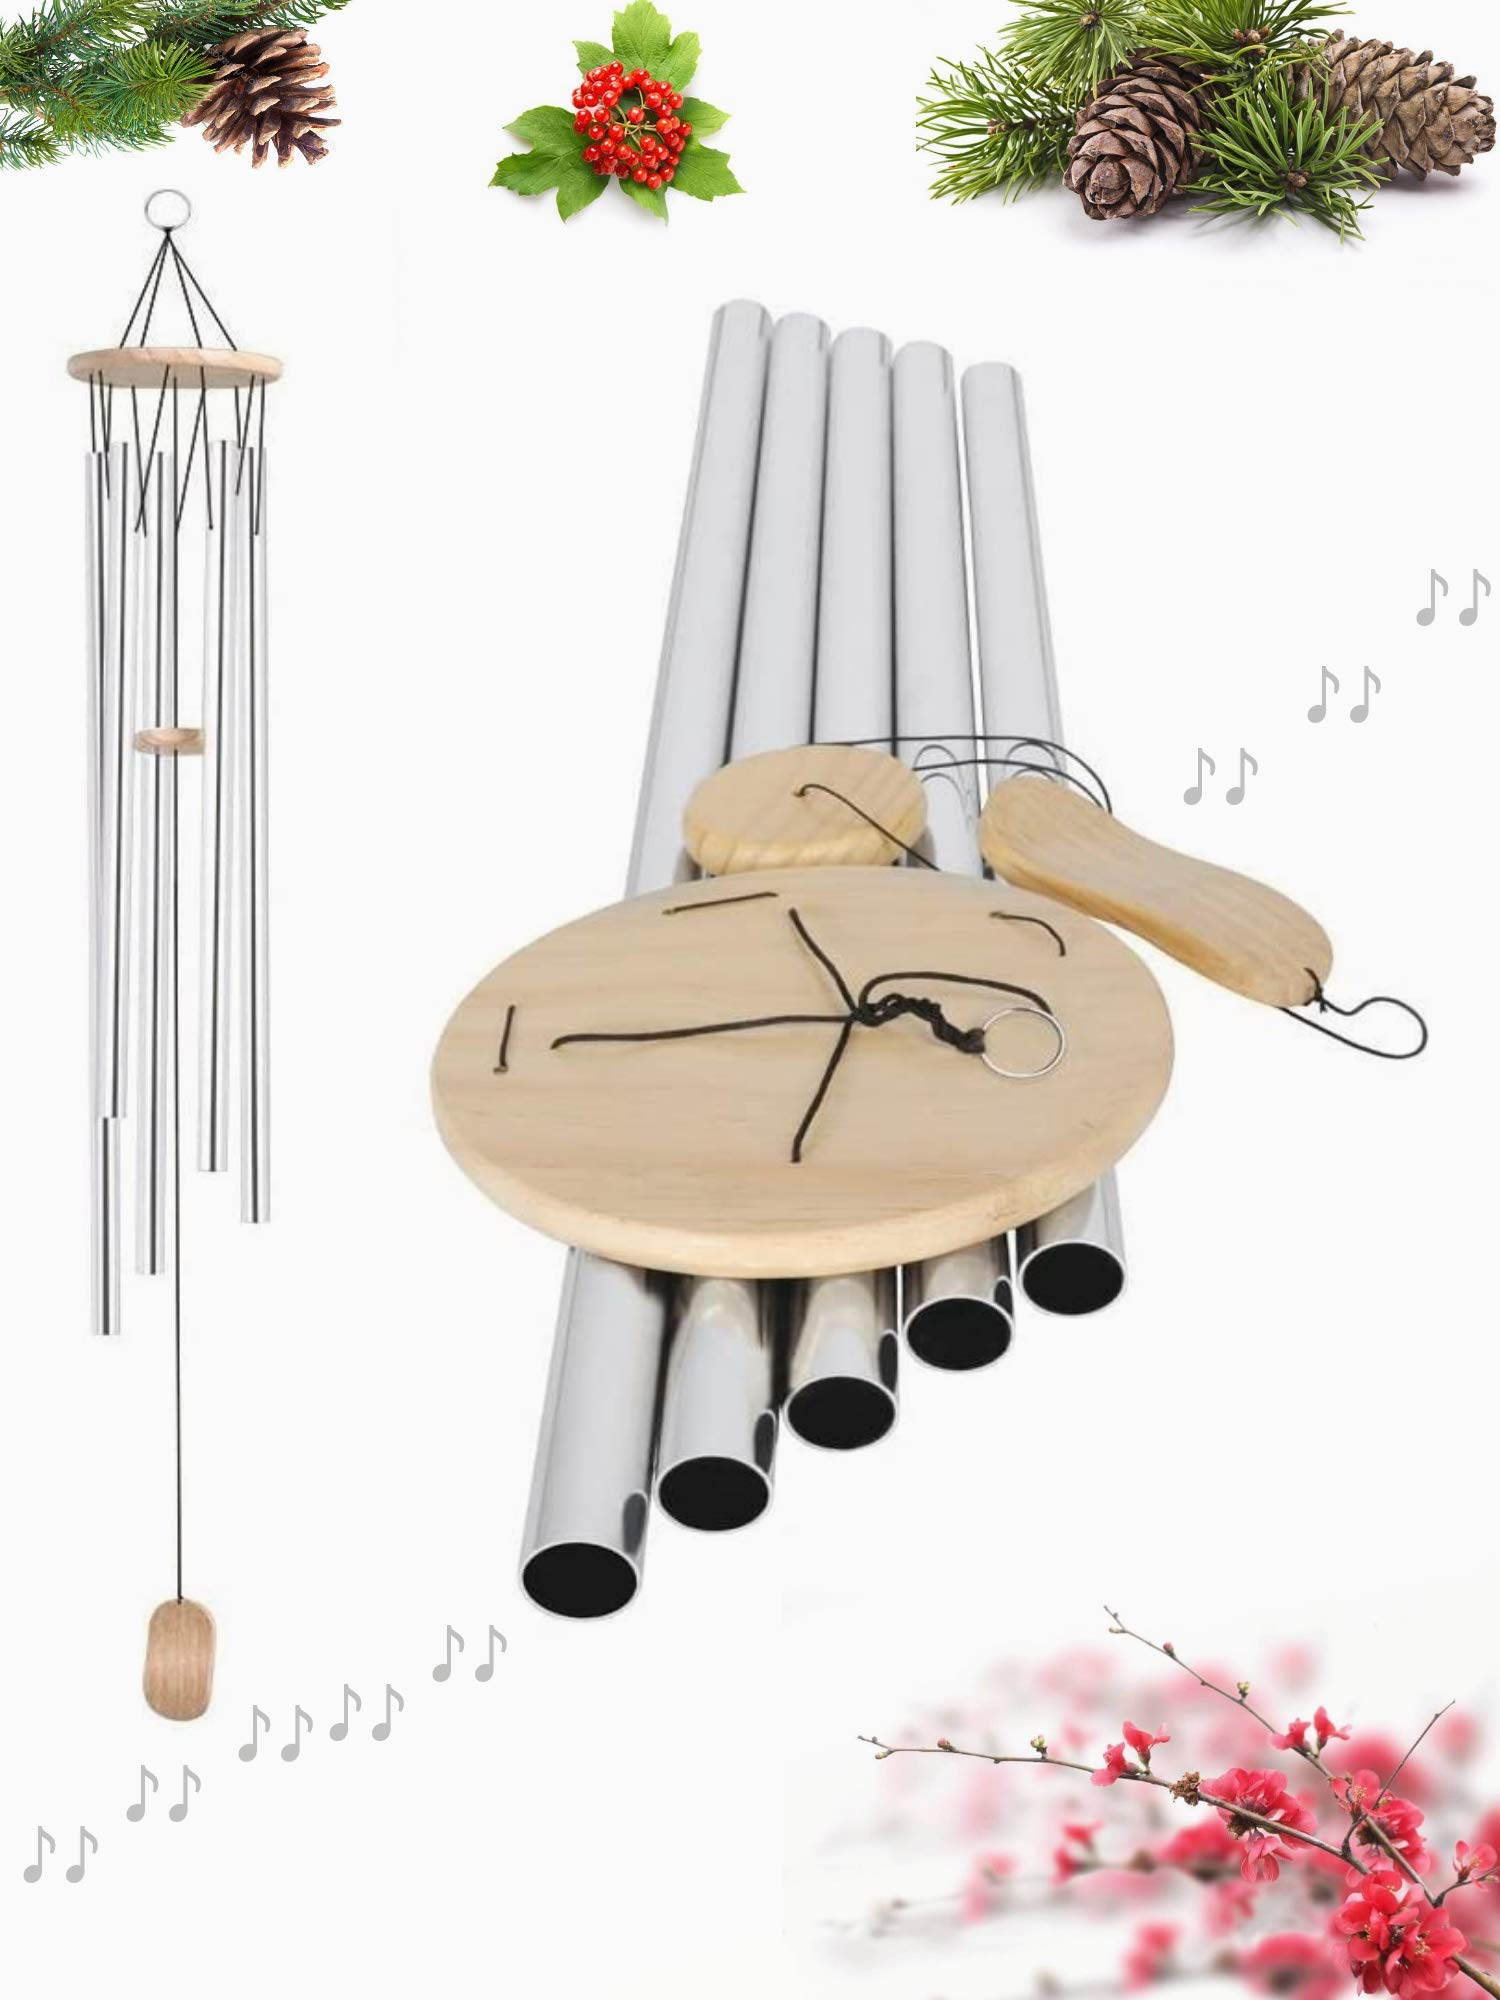 """SoB 57"""" Big Extra Large Wind Chimes Outdoor Deep Tone Bass Tuned Resonant Sound Like Church Bell, Windchimes Unique Outdoor Clearance Memorial Sympathy Outdoor Decoration for Garden Patio Porch Home"""